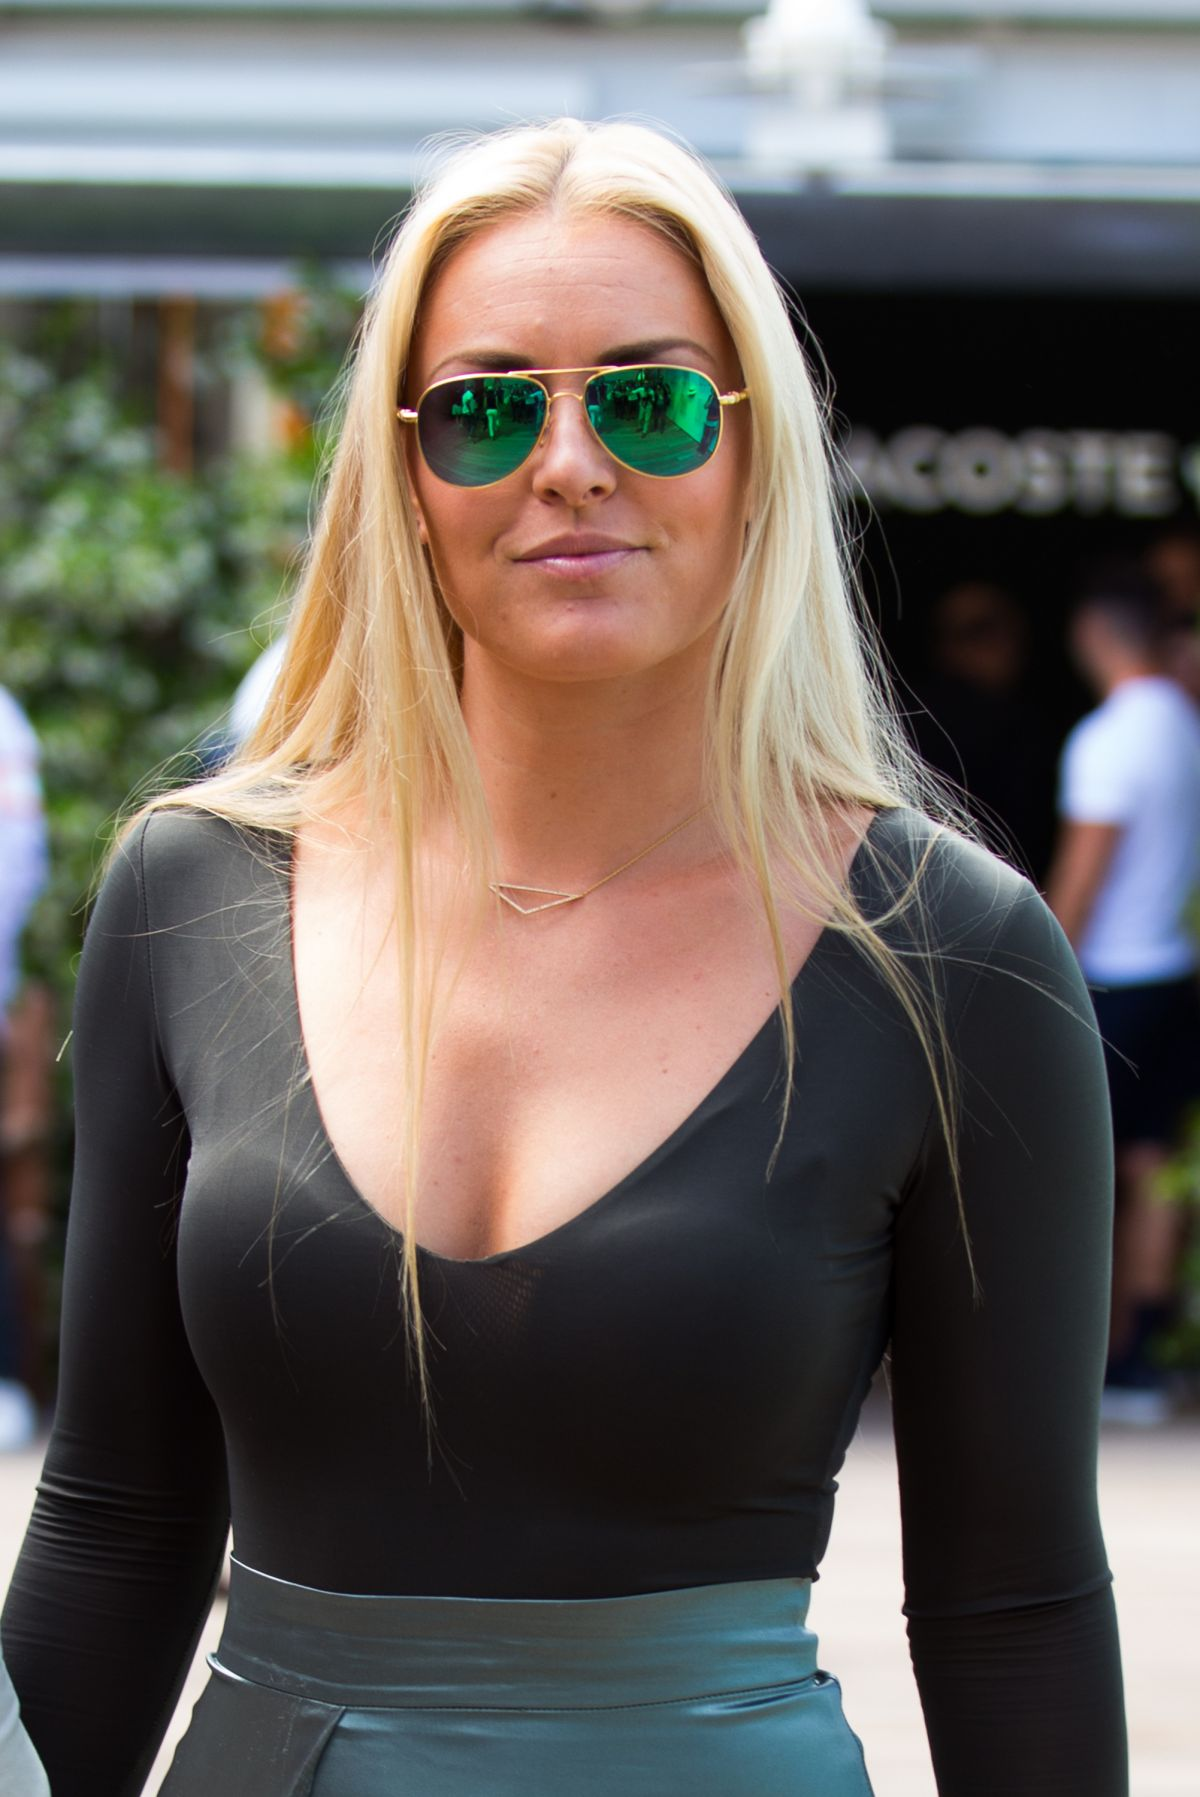 Lindsey Vonn >> Lindsey Vonn At The French Tennis Open At Roland Garros In Paris